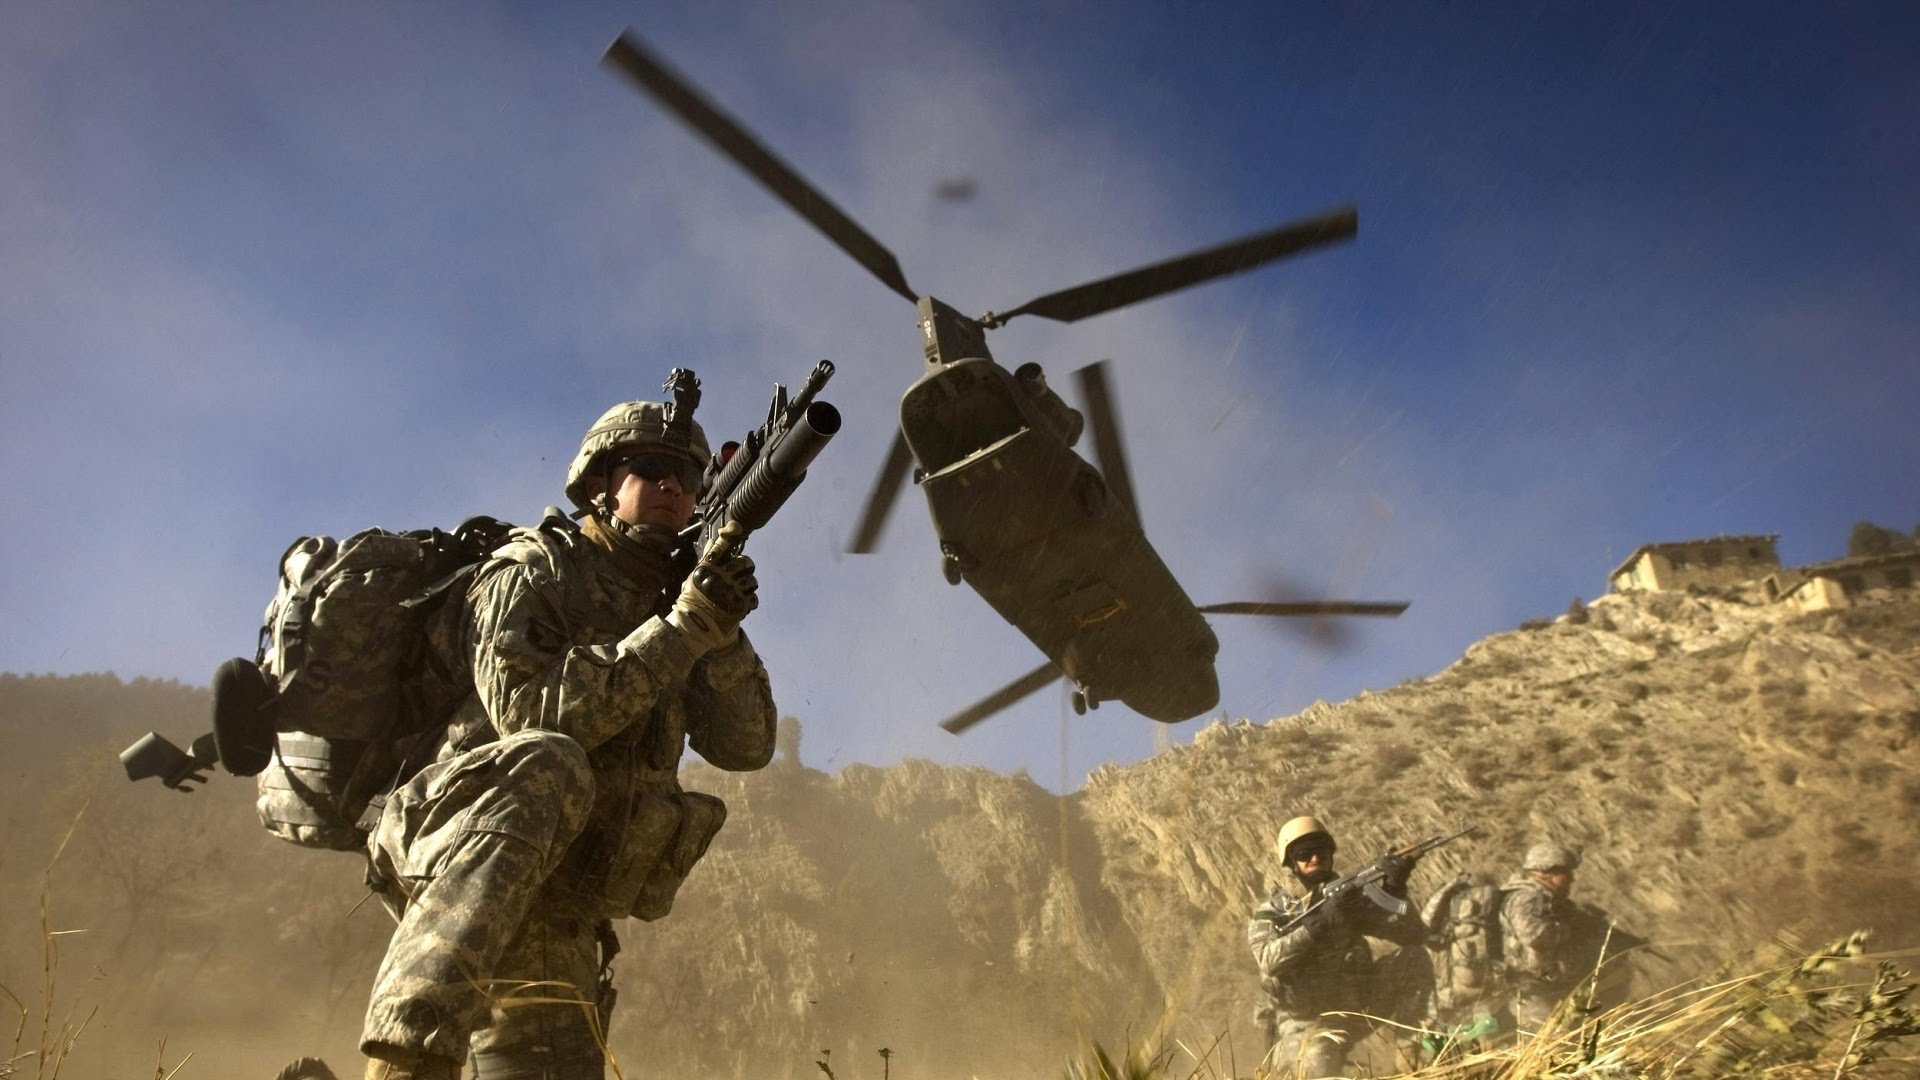 15 Intense War Movies So Real, They're Almost Too Hard To Watch